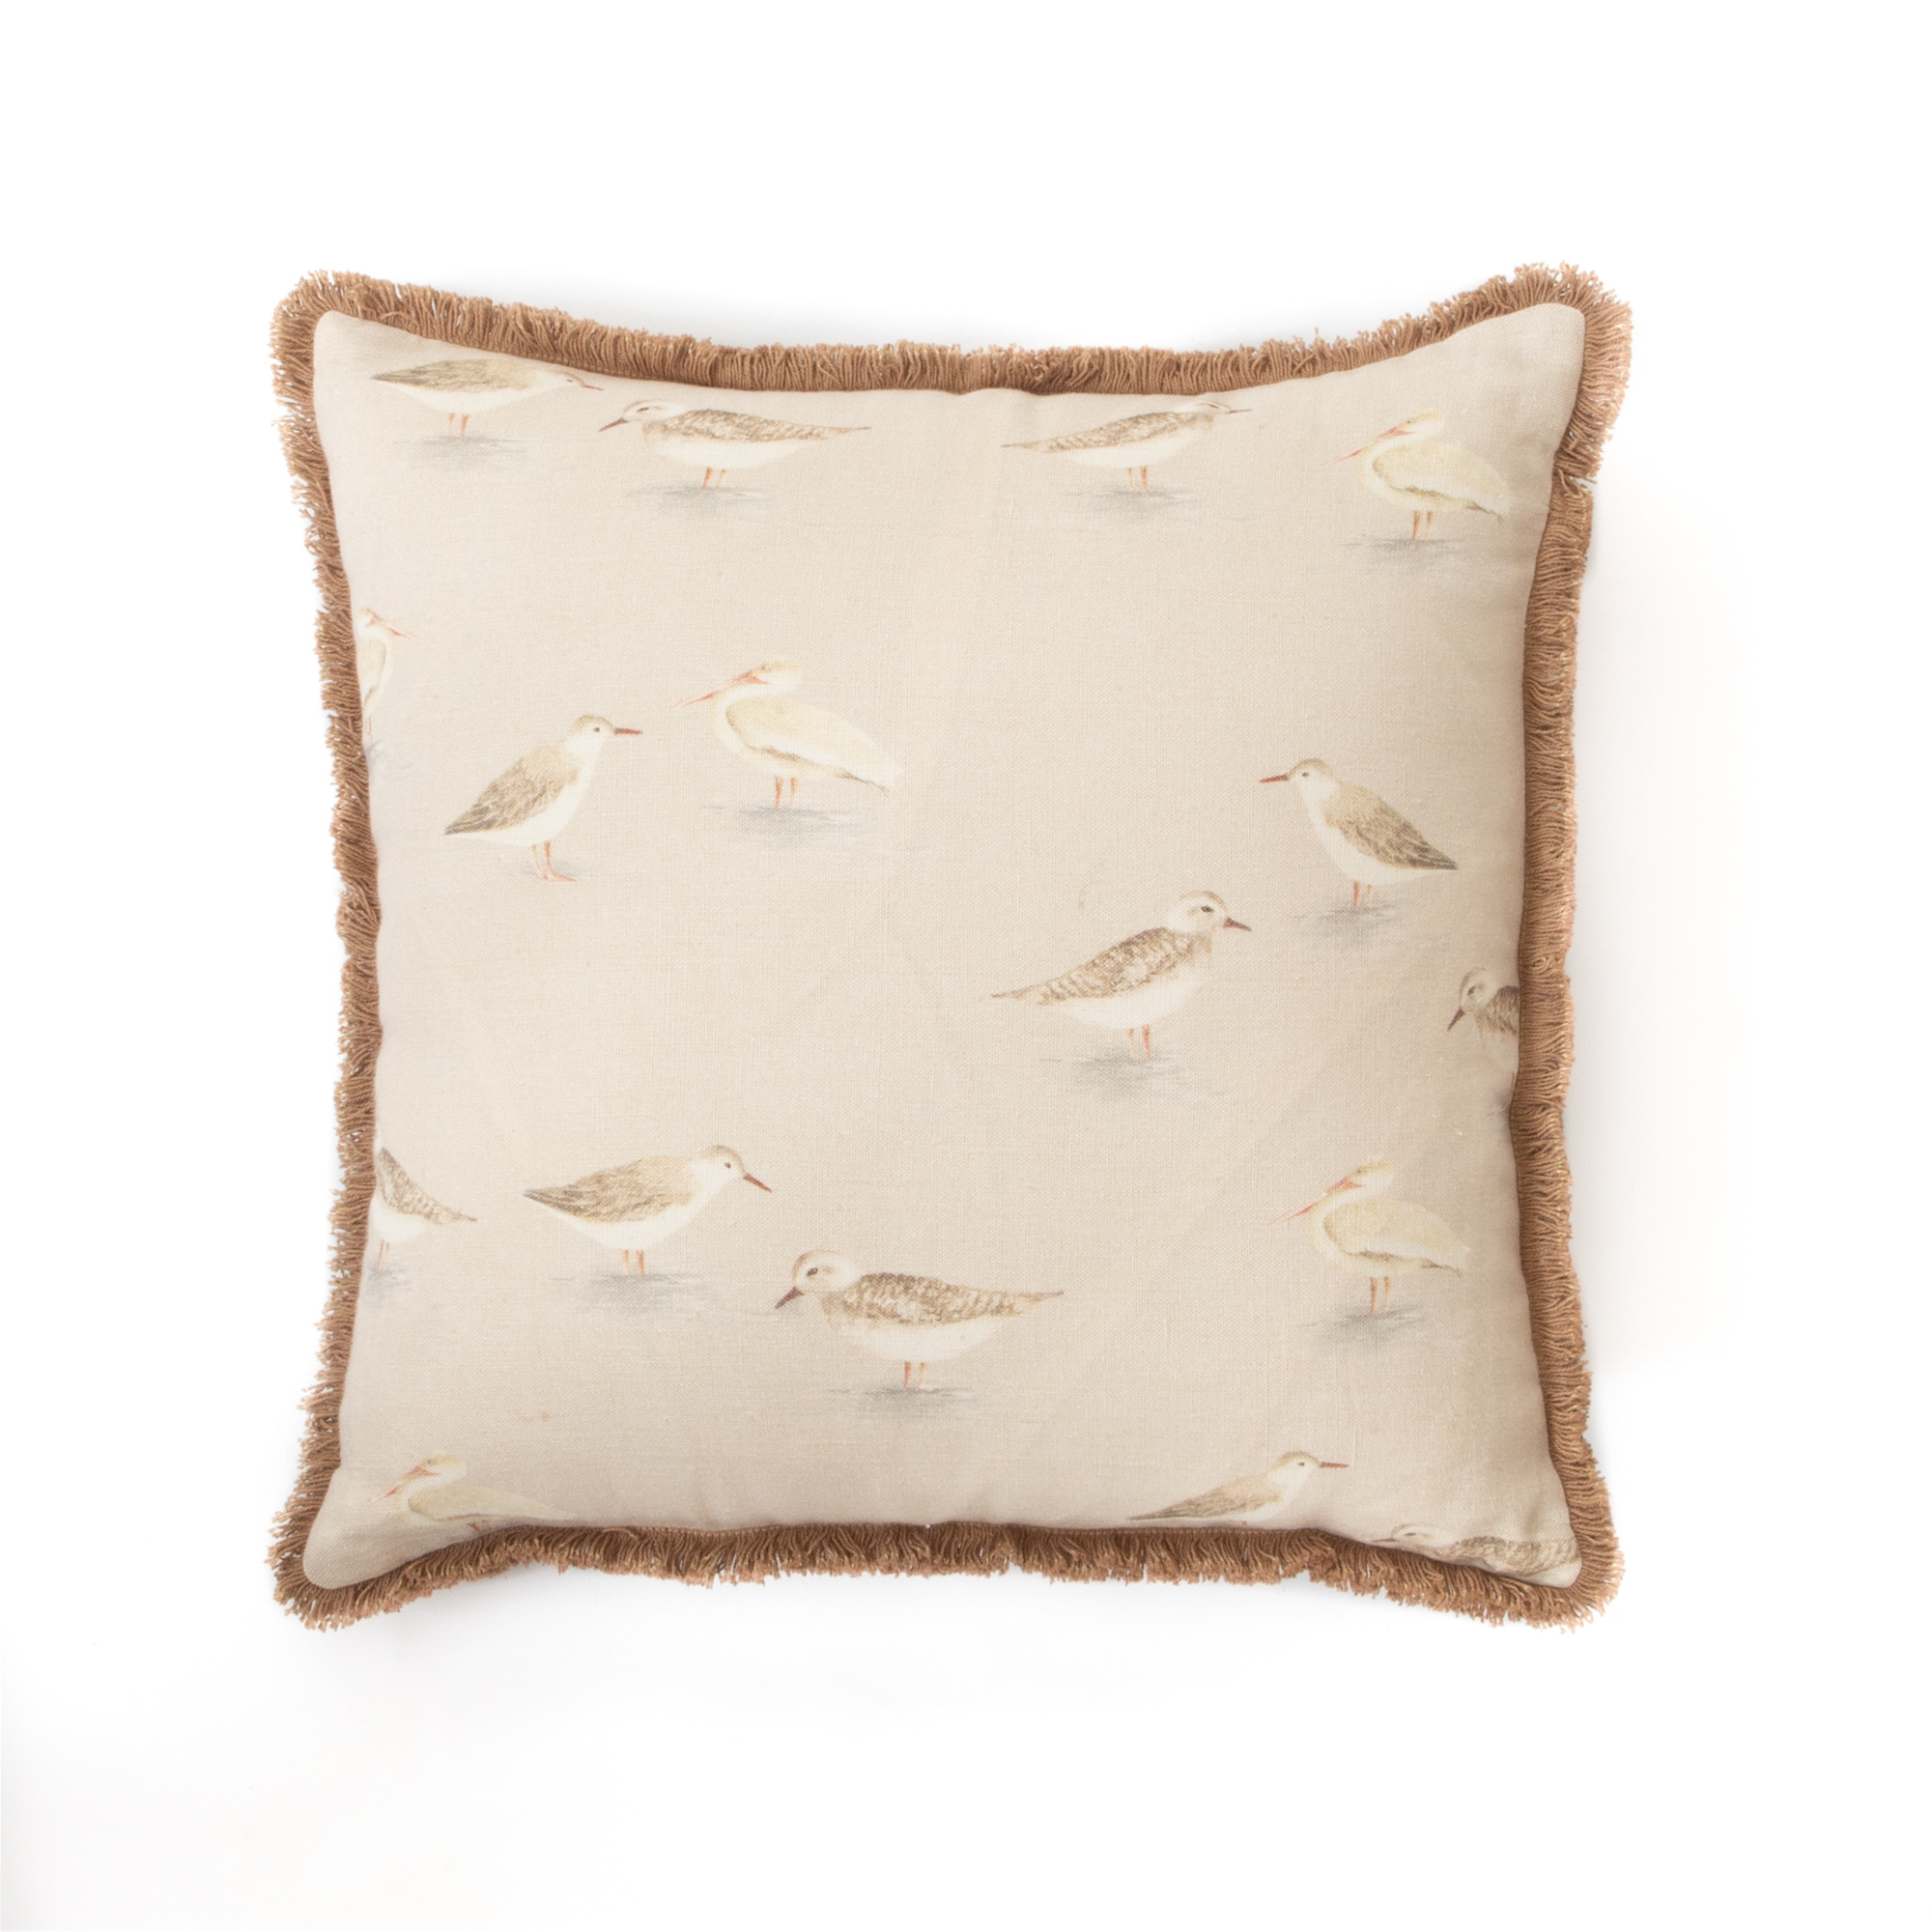 Curious Seagulls Cushion Cover